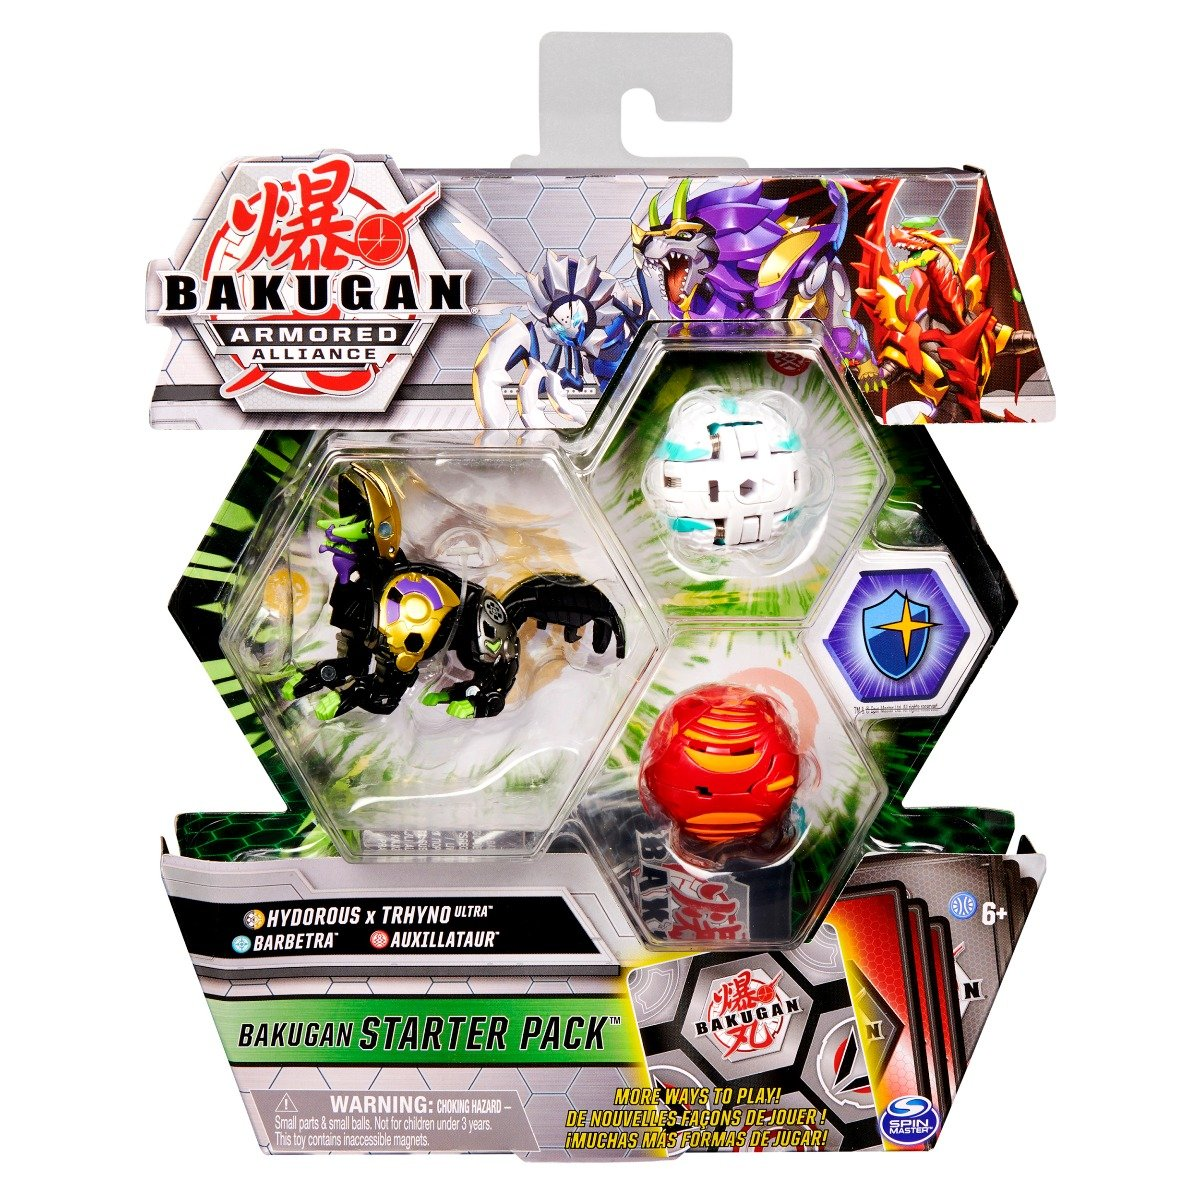 Set Bakugan Armored Alliance, Hydorous x Thryno Ultra, Barbetra, Auxillataur, 20125406